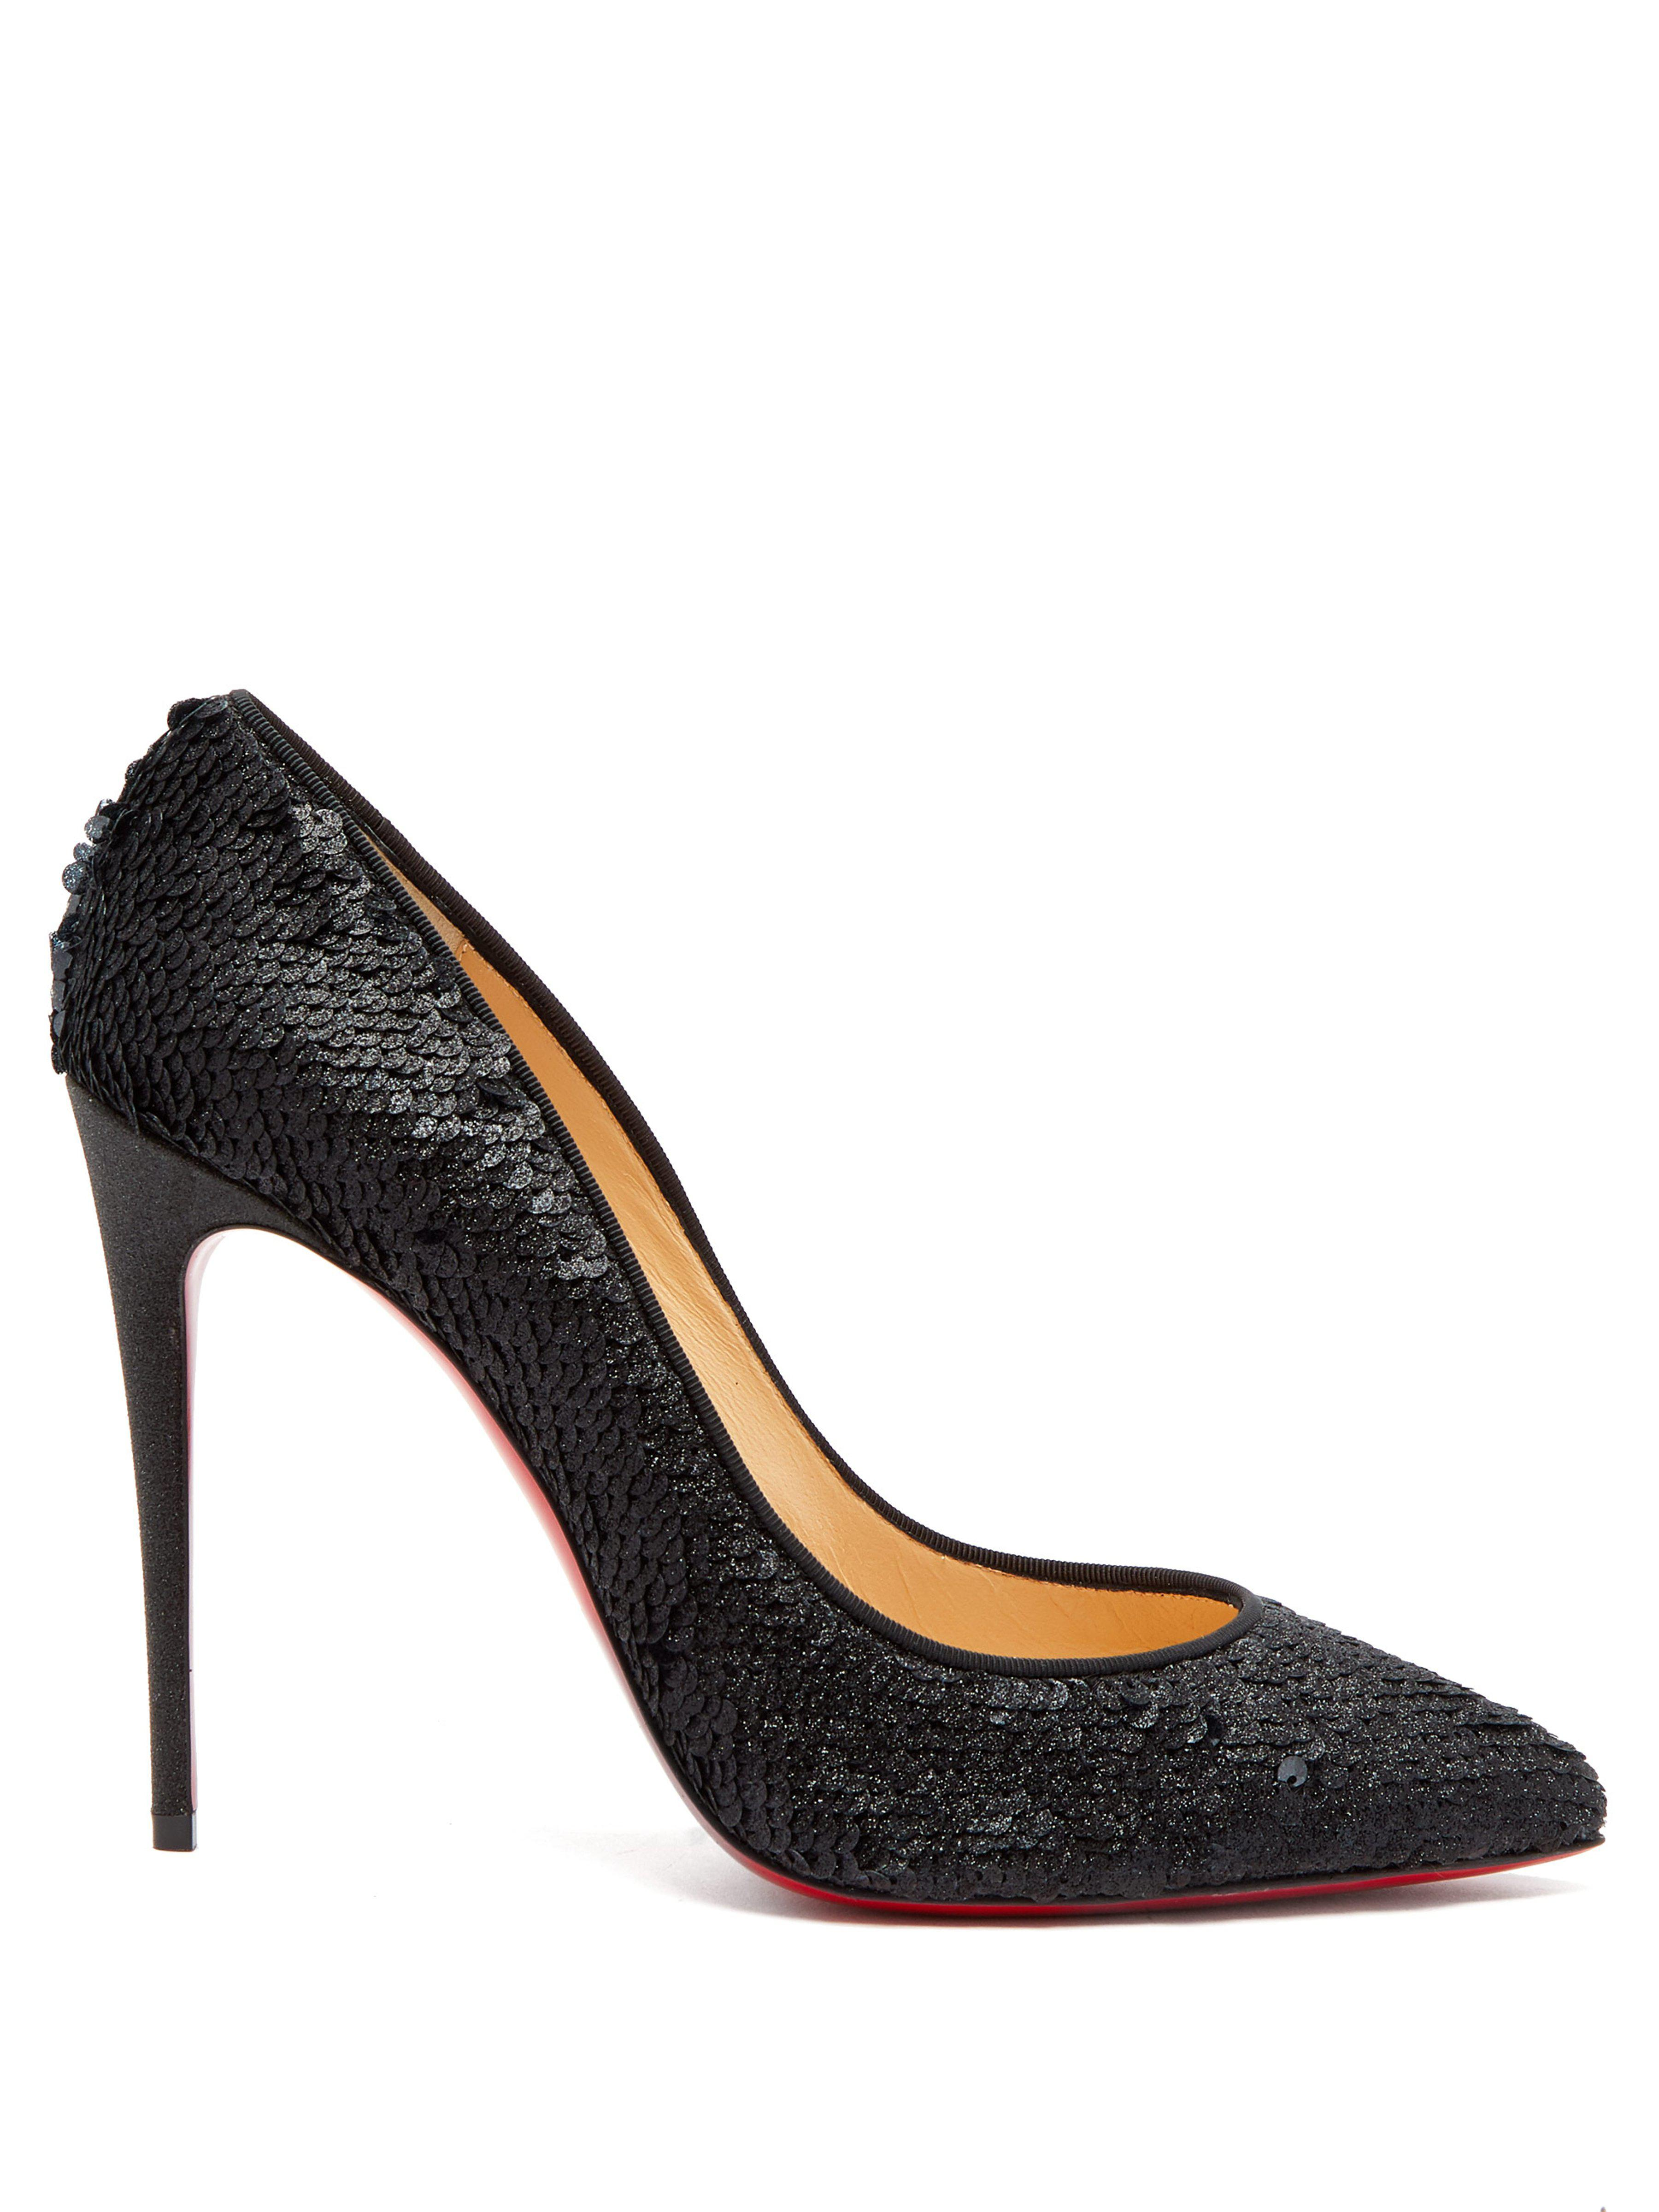 4b0b24f9af4 Christian Louboutin Pigalle Follies 100 Sequin Embellished Pumps in ...